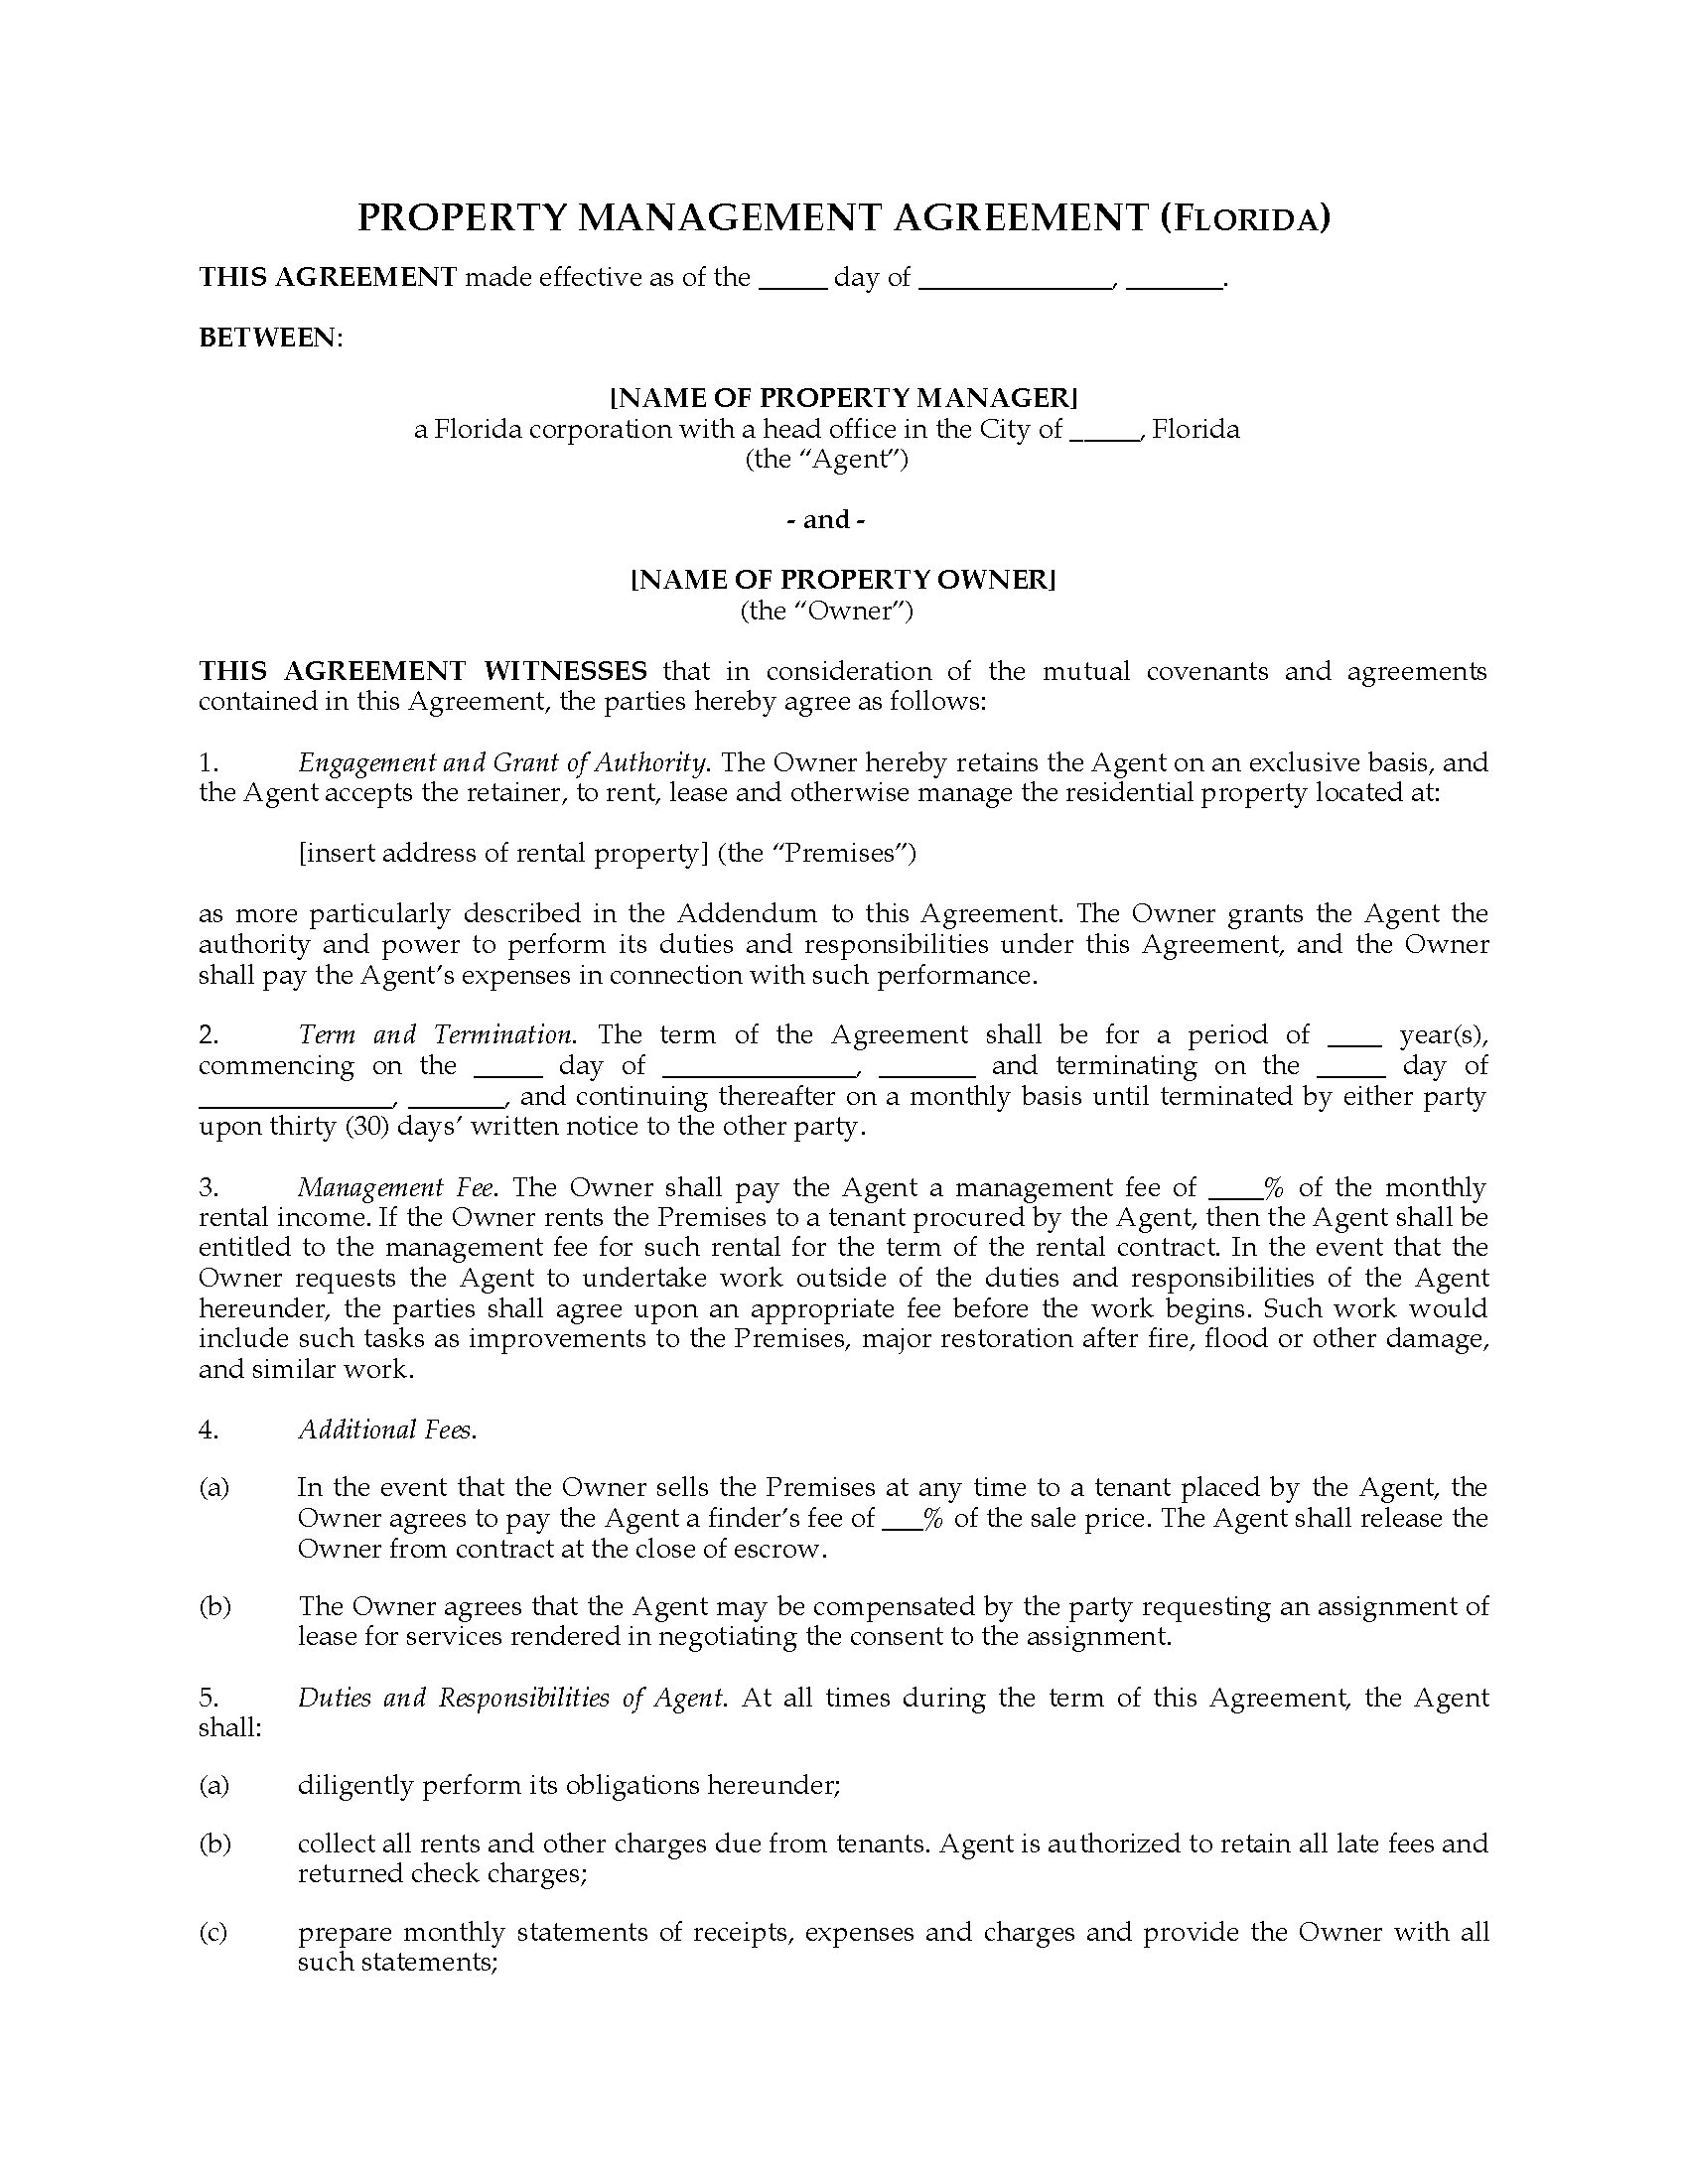 Picture Of Florida Rental Property Management Agreement